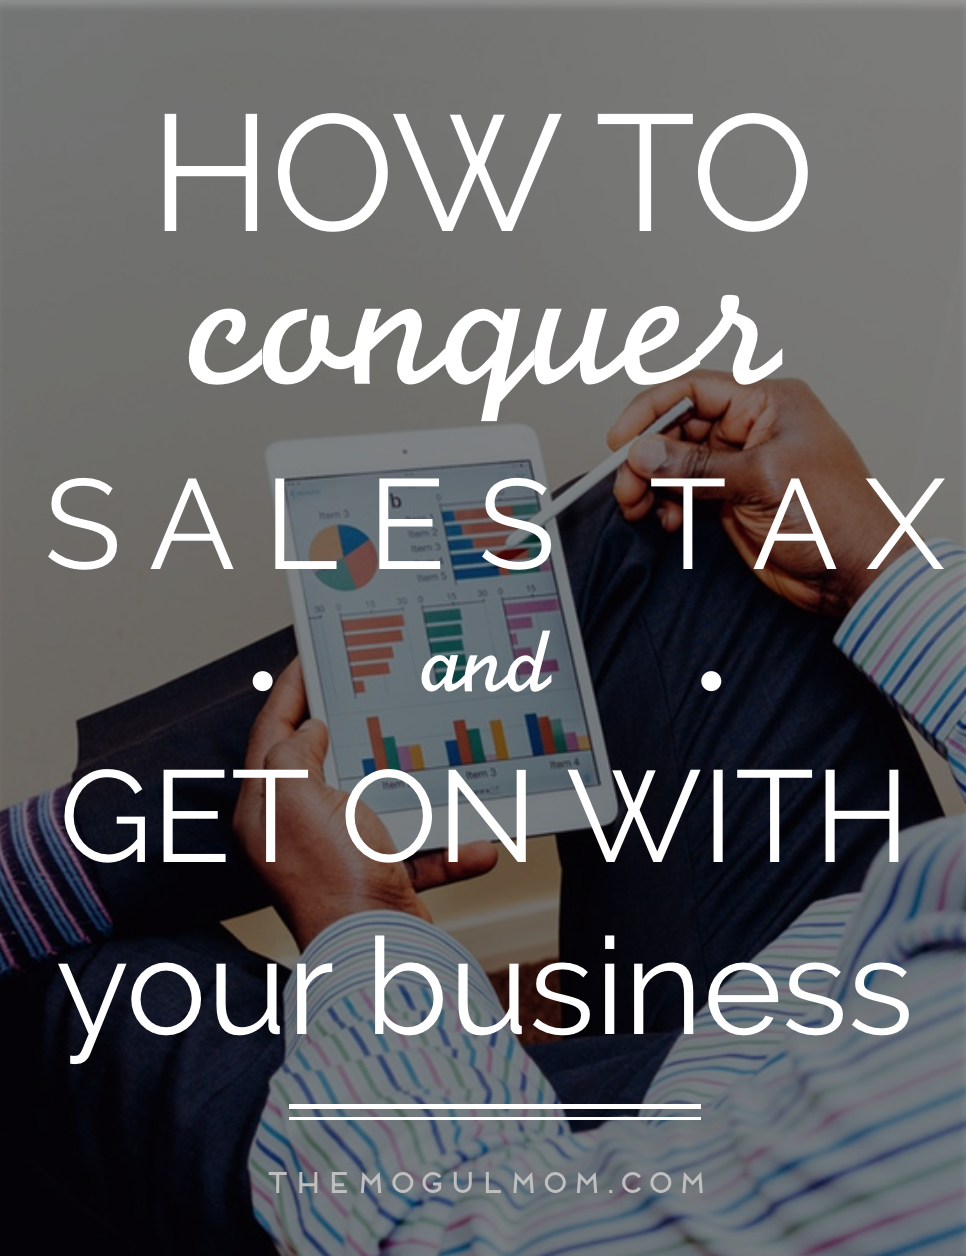 Conquer Sales Tax and Get On with Your Business